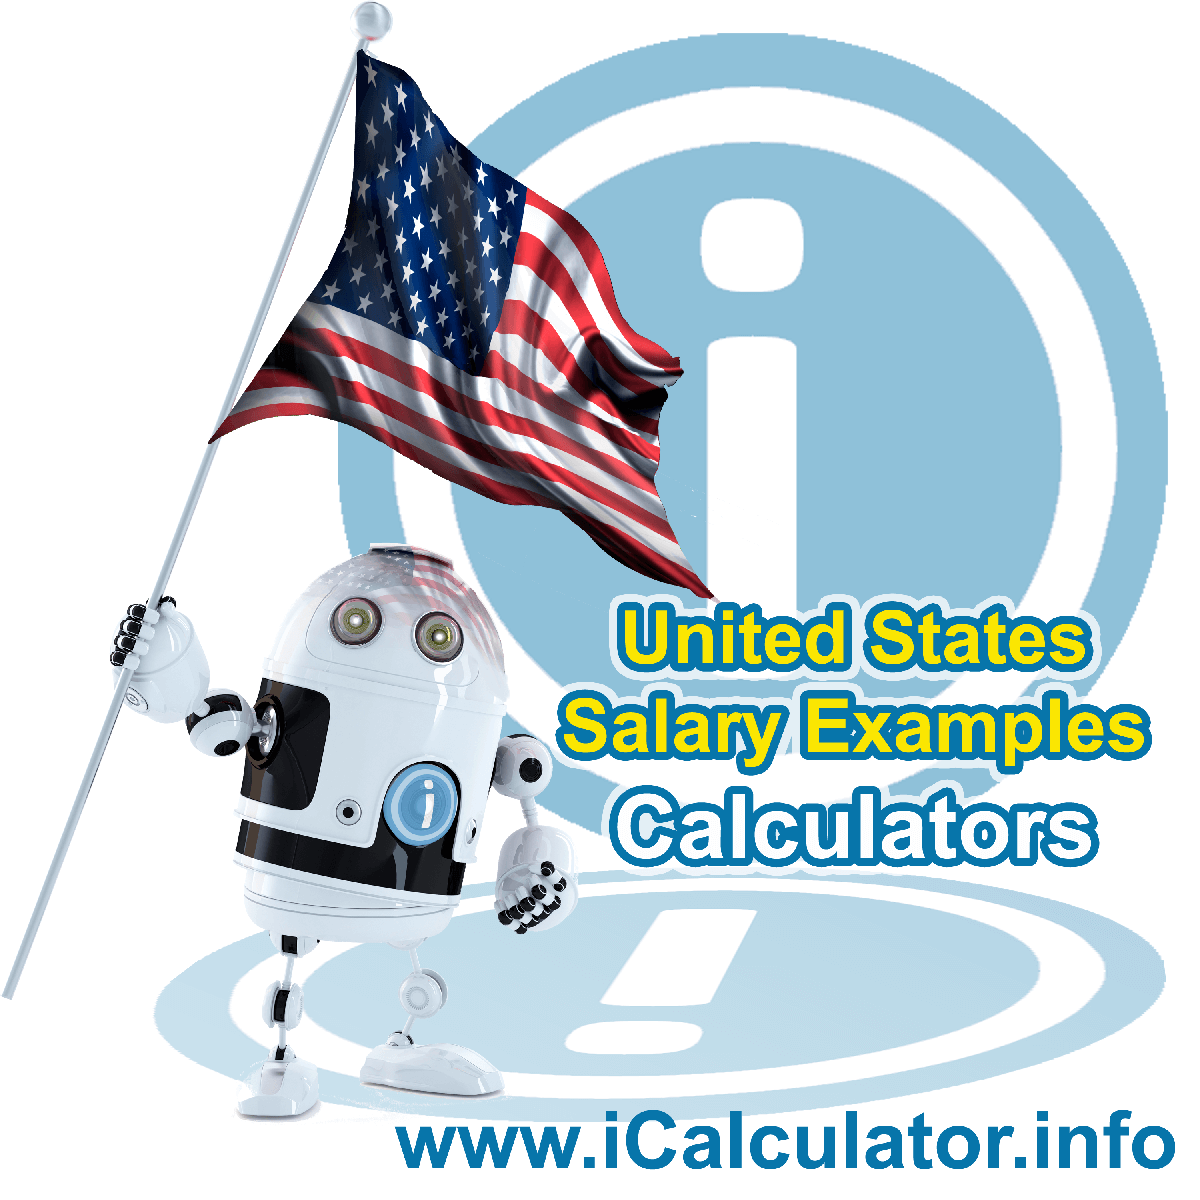 US Salary examples featuring federal tax return calculations, state tax return calculations, how to calculate mdicare, pensions and other tax credit elements which form part of the annual tax return